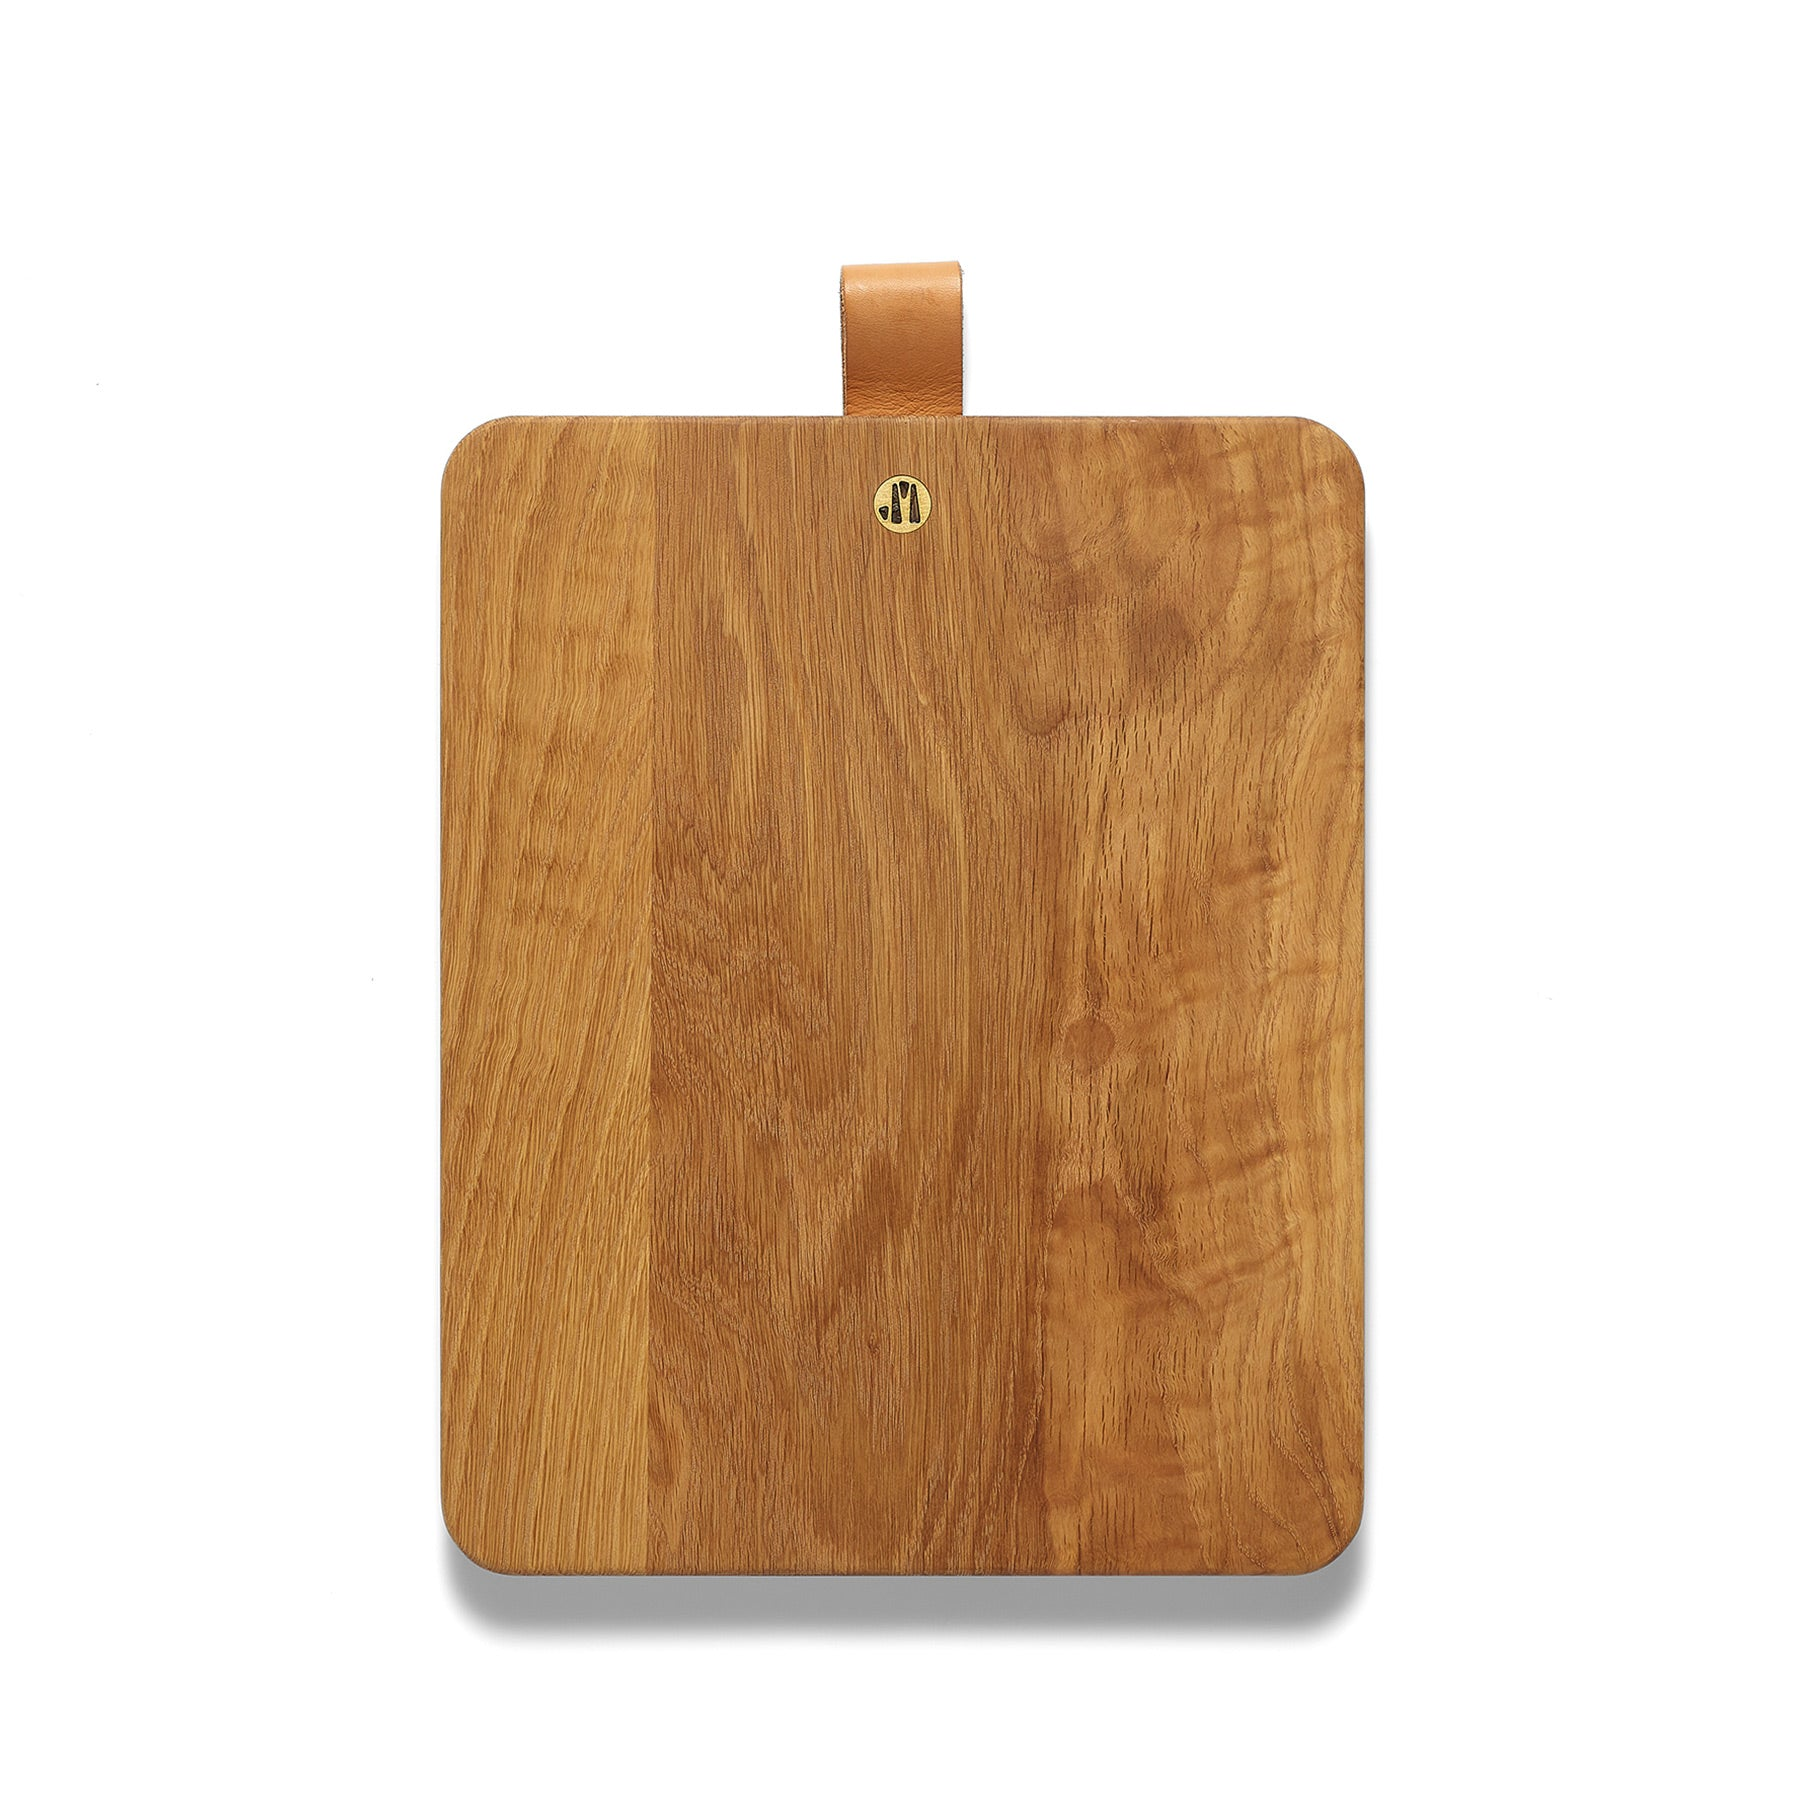 Rectangular White Oak Cutting Board with Leather Tab Zoom Image 1